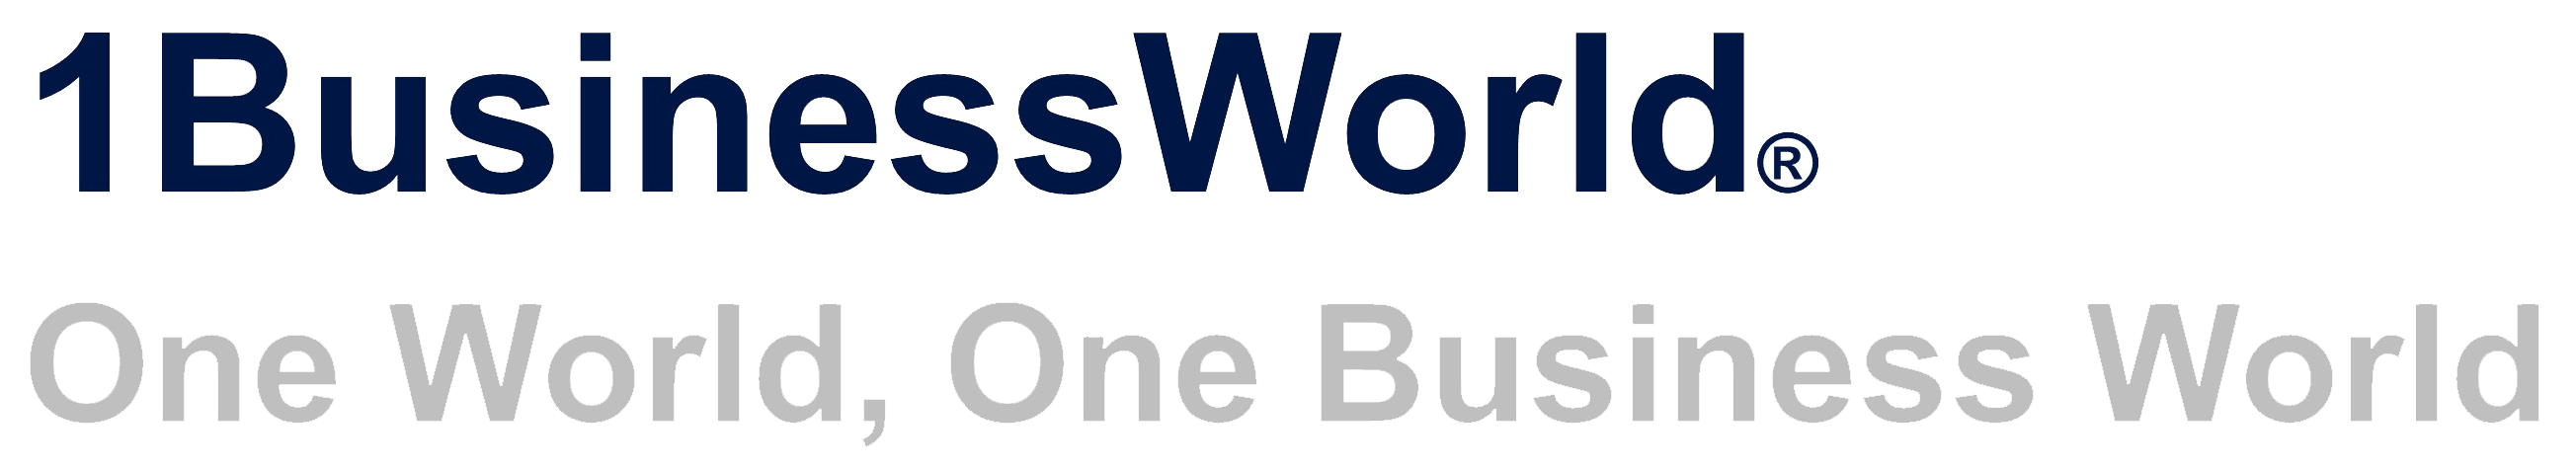 1BusinessWorld - One World, One Business World